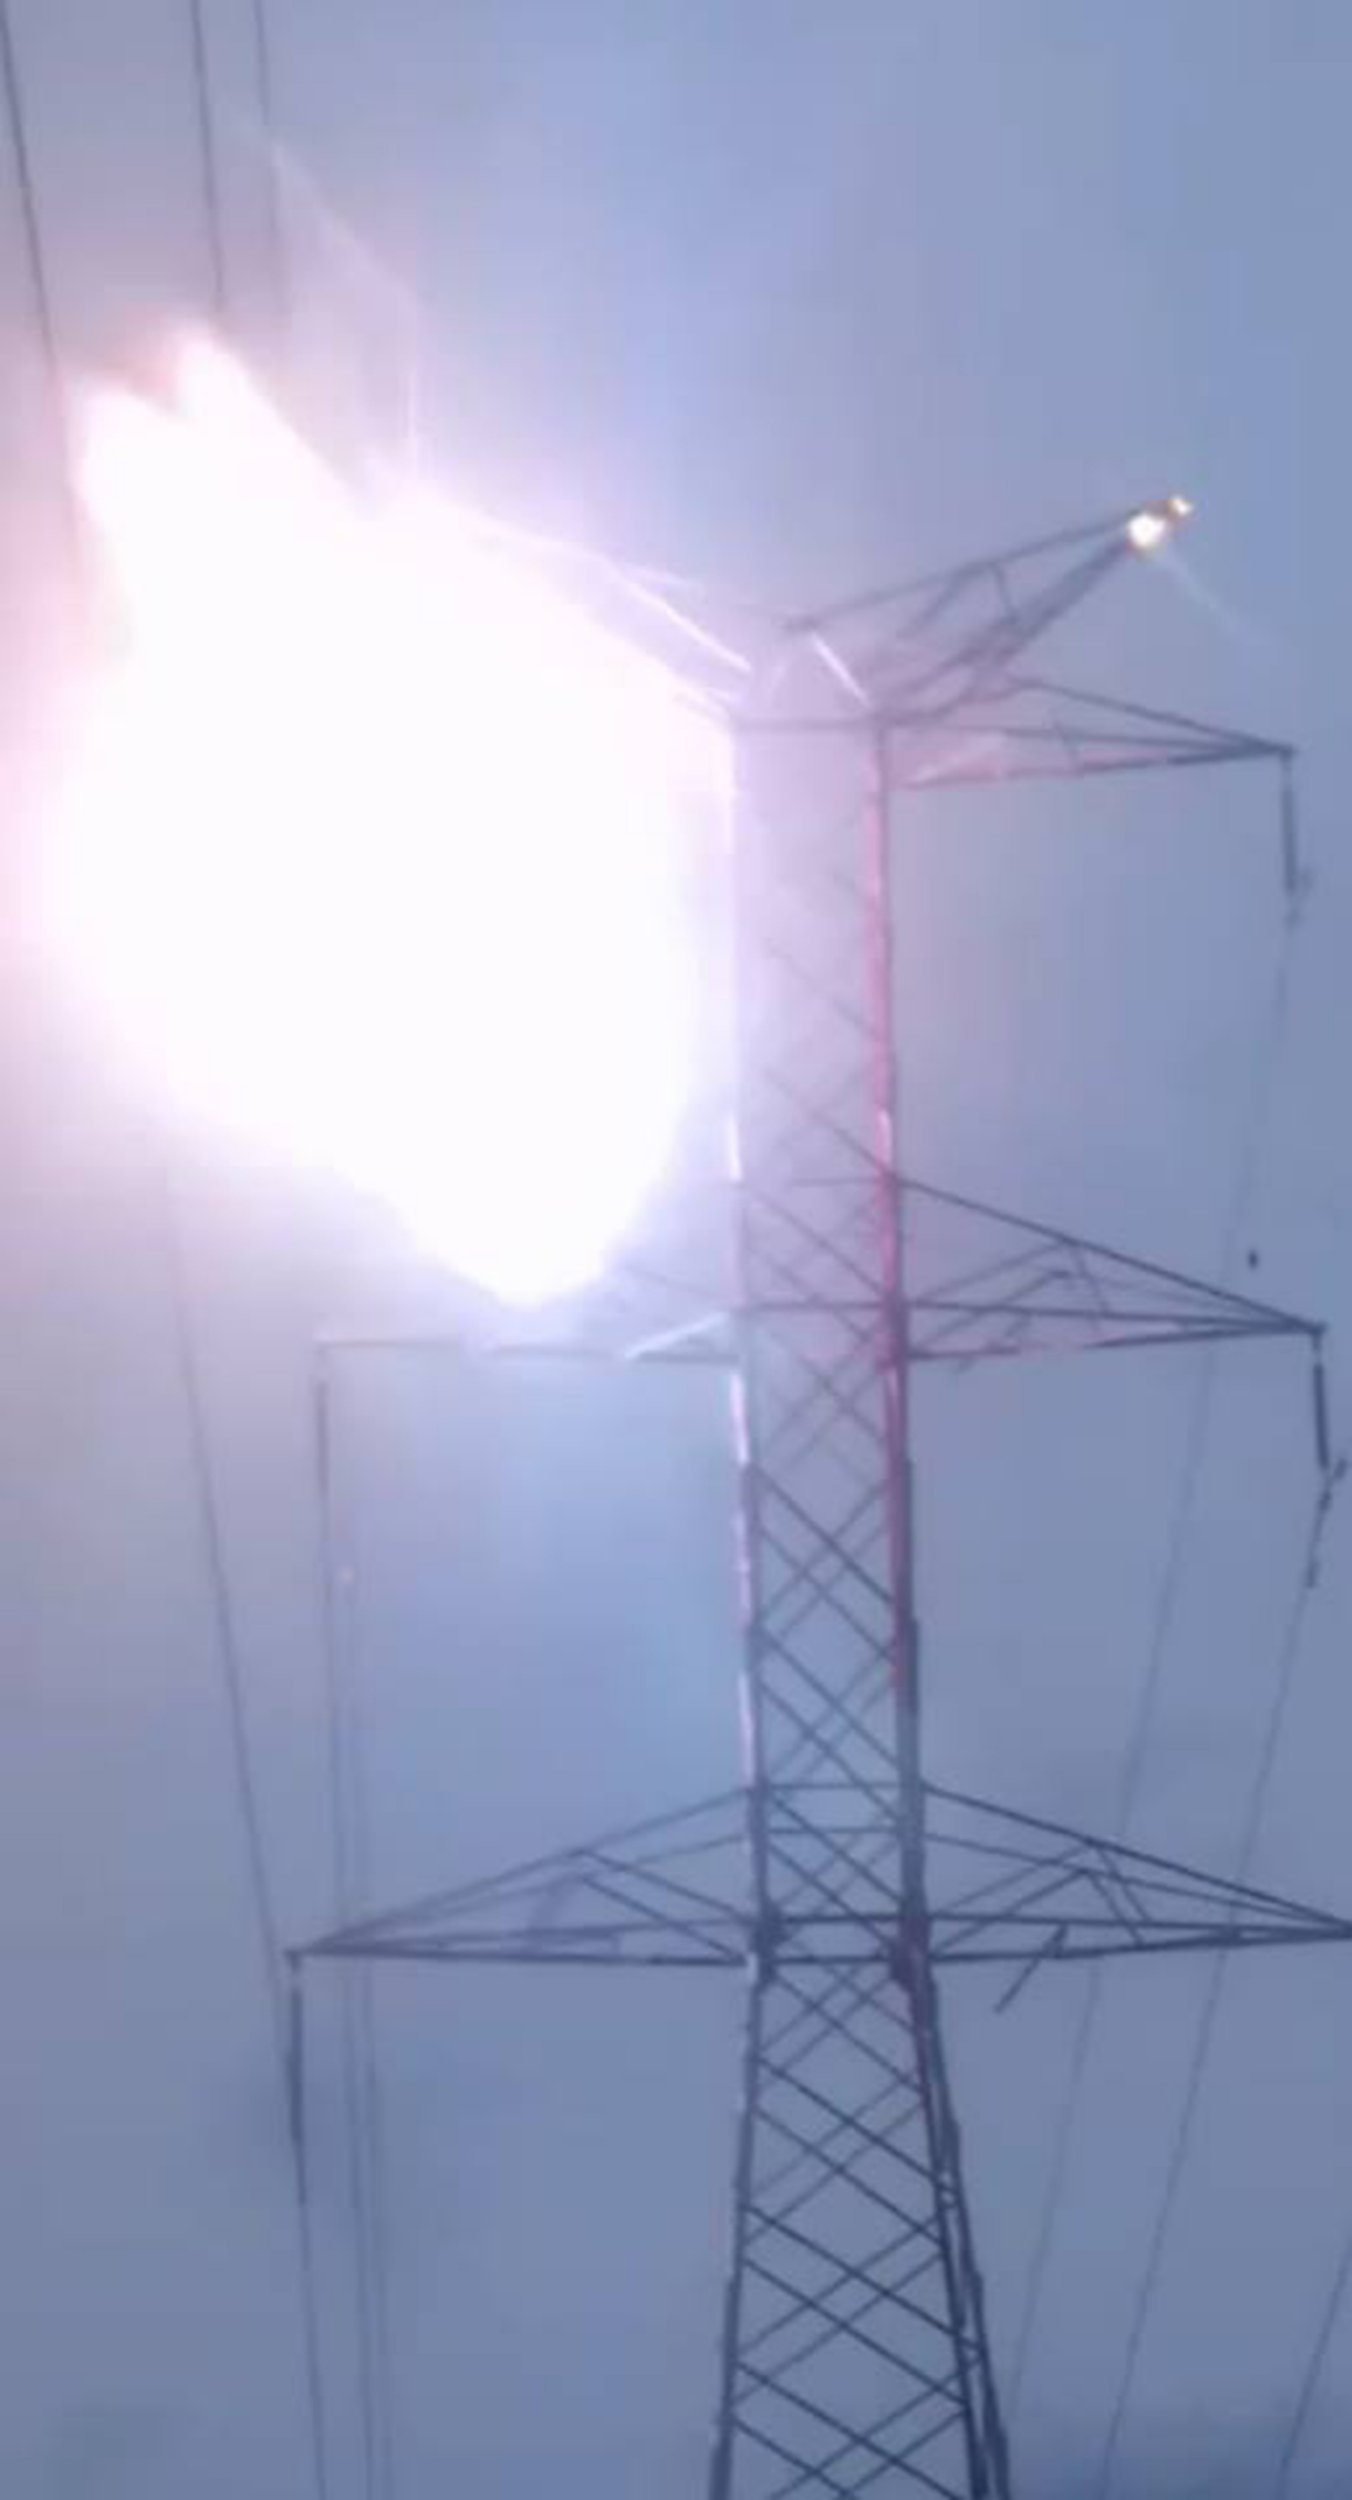 """Pic shows: The moment Victor Jose Arroyo Gonzalez got electrocuted and fell off the tower. This is the tragic moment a deaf-mute young man fell more than 160 feet to his death from an electricity pylon when he touched live wires after giving up on his suicide bid. Victor Jose Arroyo Gonzalez, 20, had scaled the huge pylon in the city of Barranquilla in northern Colombia???s Atlantico department and threatened to throw himself off. But police officers and onlookers reportedly talked him out of killing himself and he had just started climbing back down when tragedy struck, according to reports. There was a huge flash and a cloud of smoke as the young man touched a live wire and he fell from near the top of the pylon. His limp body flipped around another cable lower down before somersaulting all of the way to the ground below as a crowd of onlookers screamed in horror. The disturbing scenes were captured on the smartphones of eyewitnesses in the Los Olivos area of the city. Mr Gonzalez had earlier been heard shouting: """"I am going to throw myself off, I do not want to continue living anymore, I cannot cope anymore."""" He was declared dead at the scene. The deaf mute man was reportedly suffering from depression and had previously climbed tall structures to threaten suicide. Barranquilla, a port on the Caribbean Sea, is the only major city in South America that was populated before its formal foundation by Europeans. (ends)"""